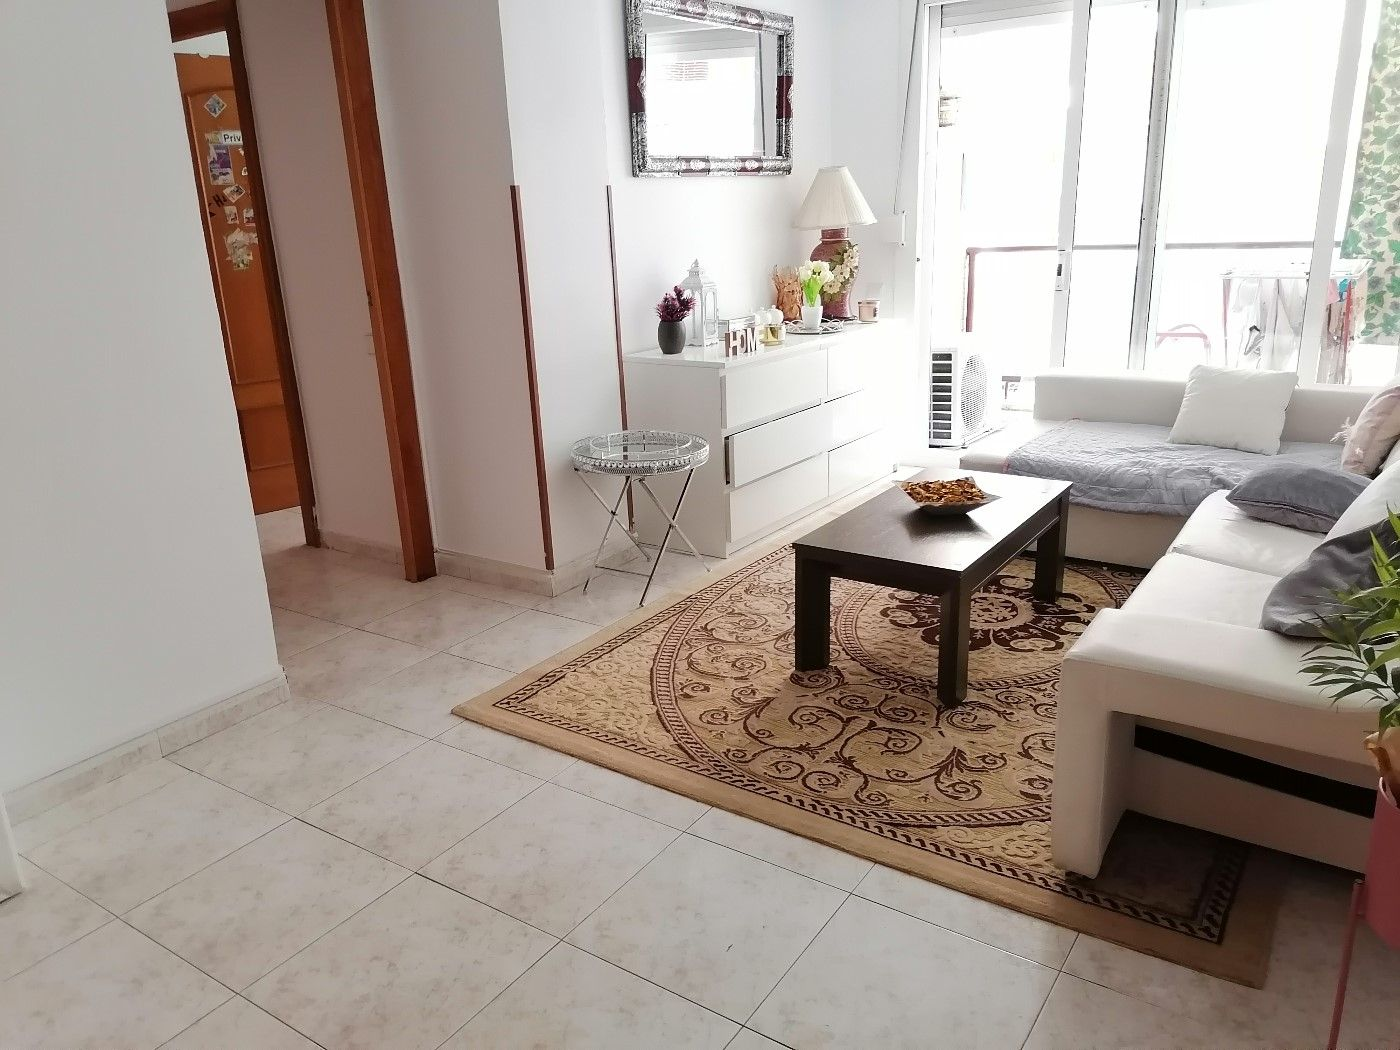 Location Appartement à Zona alta. Piso en arenys de mar